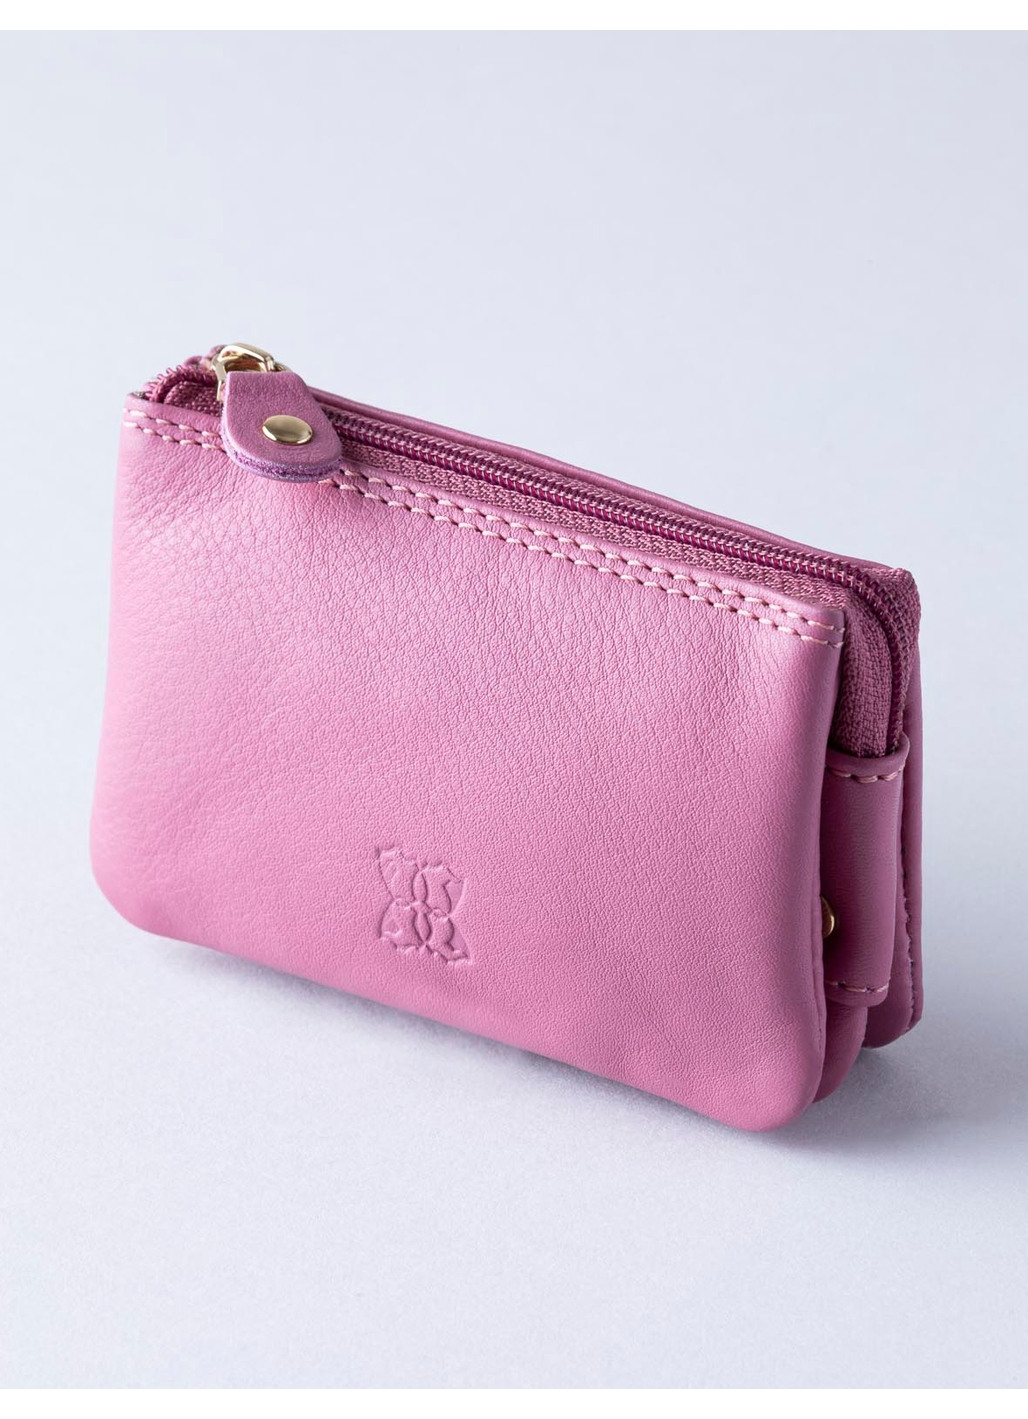 Leather Coin Purse in Mauve